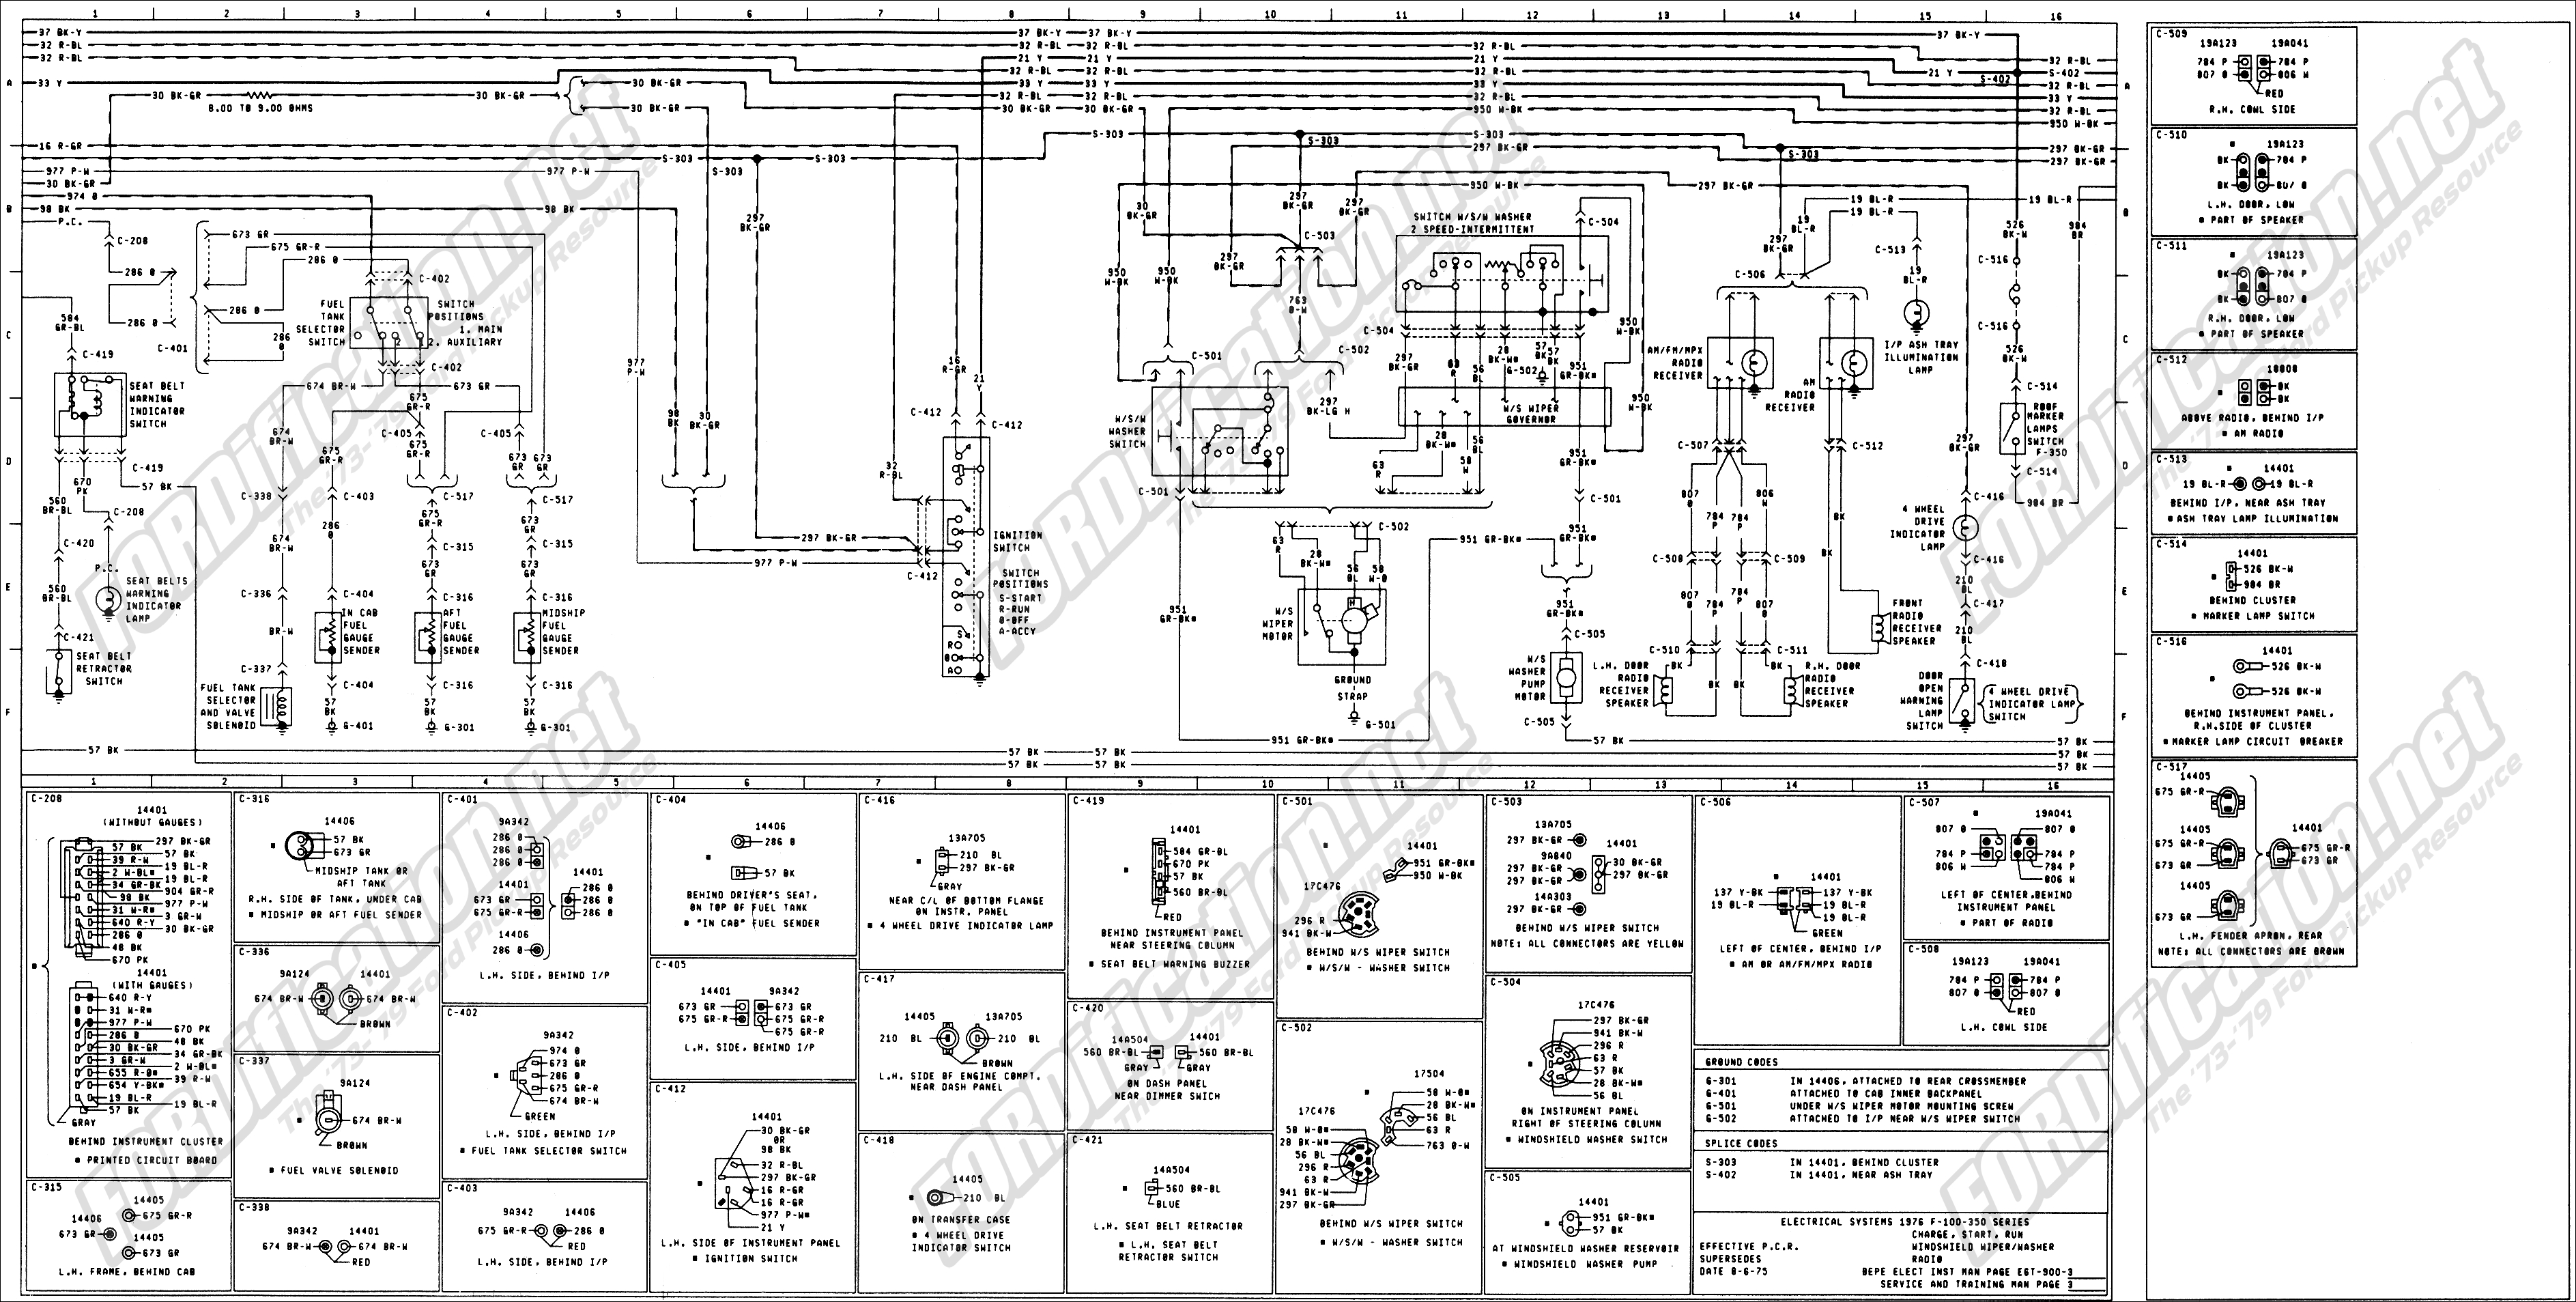 2003 Ford F 250 Parking Light Wiring Diagram - Wiring Diagrams Thumbs - 2006 Ford F250 Trailer Plug Wiring Diagram